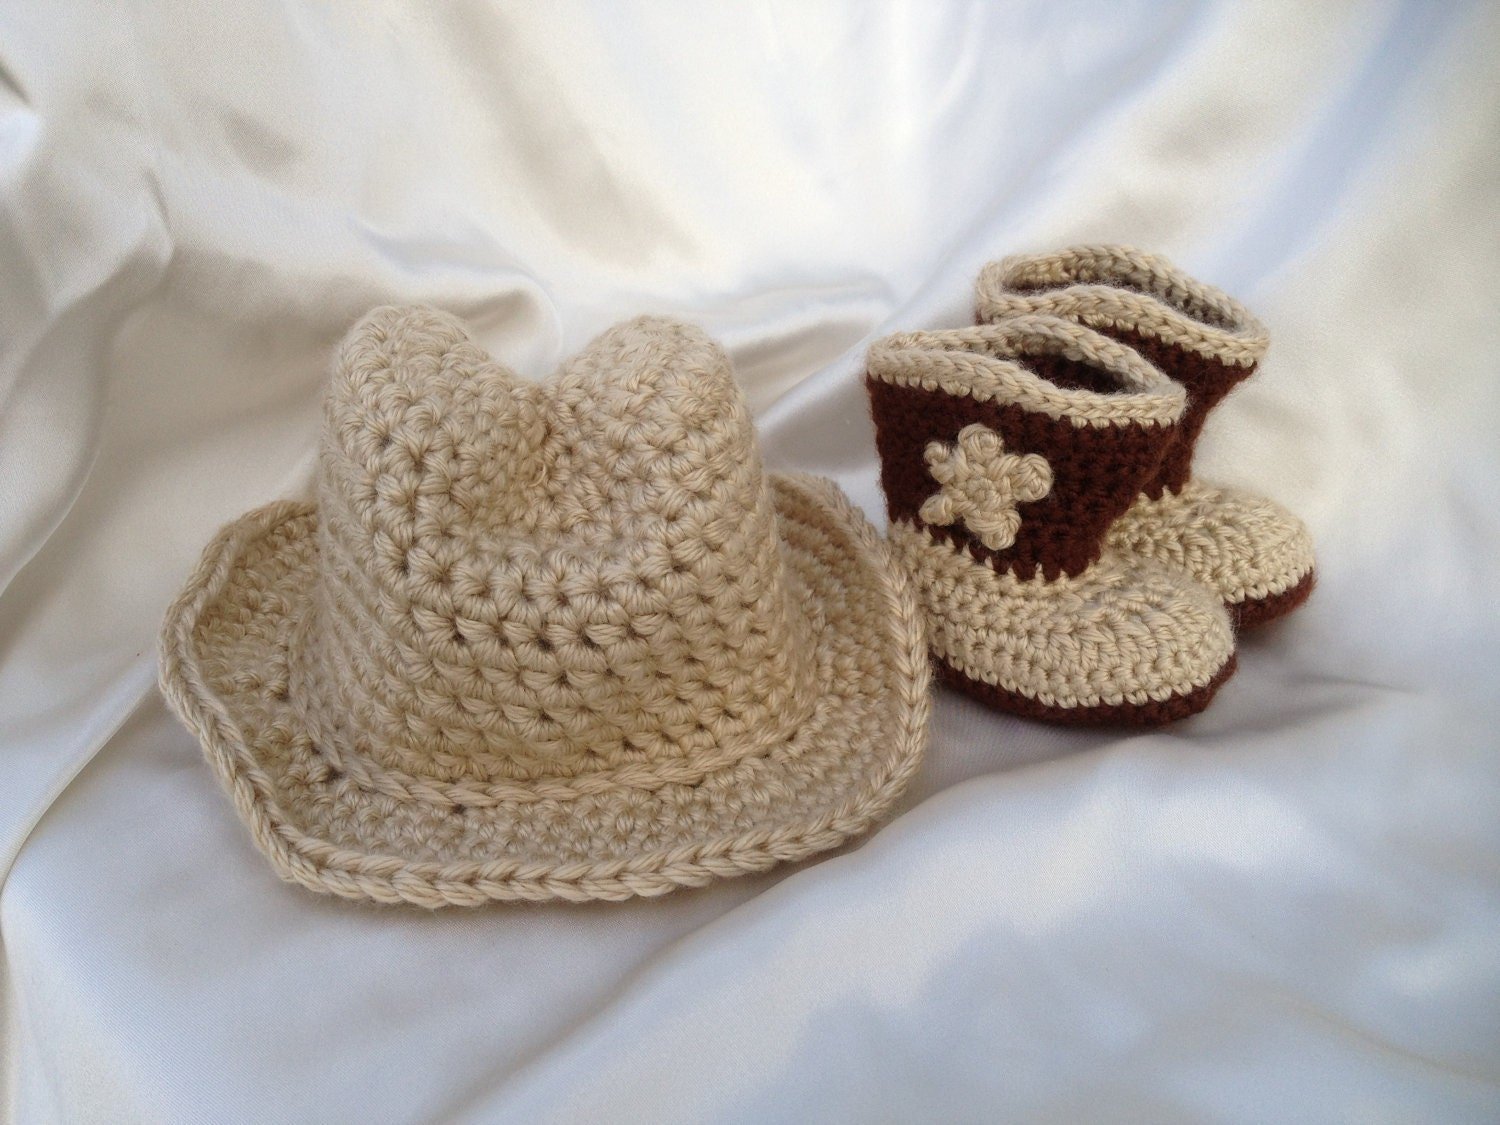 Crochet Baby Cowboy Free Pattern : Crochet Baby Brown Cowboy Hat and Bootie set by cmiron on Etsy